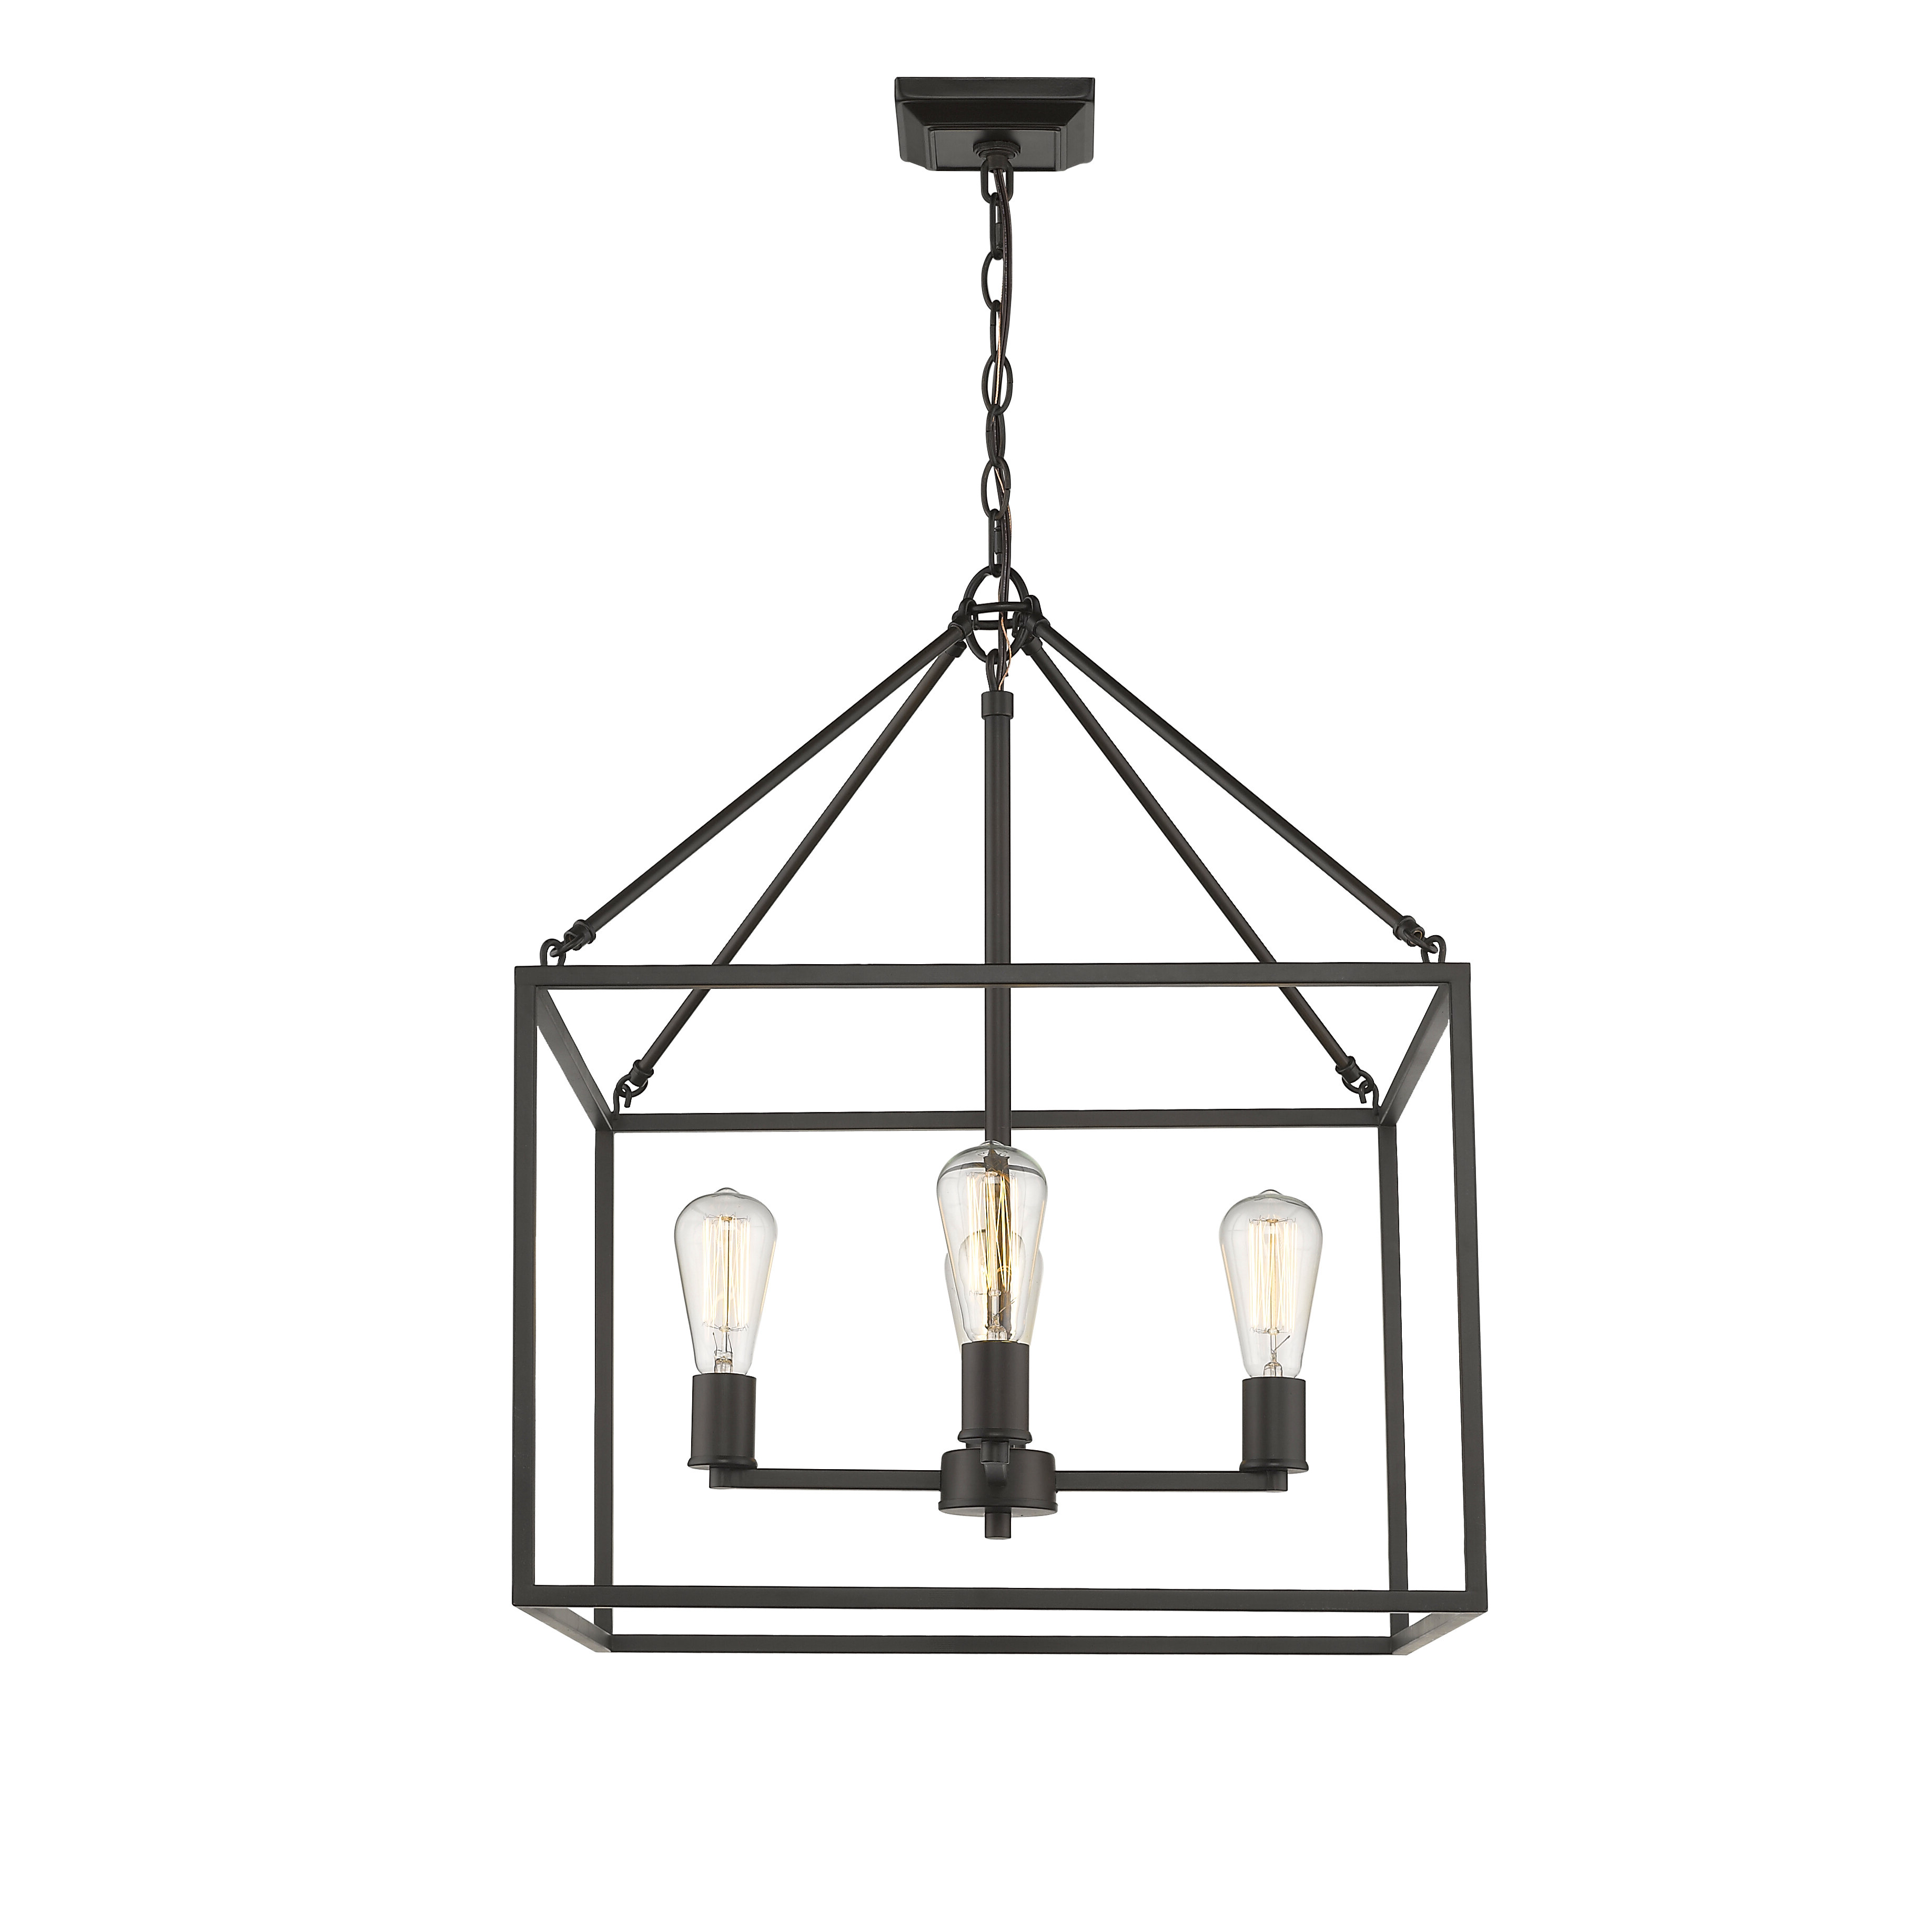 Most Recent Zabel 4 Light Lantern Square / Rectangle Pendant Inside Odie 8 Light Lantern Square / Rectangle Pendants (View 10 of 20)